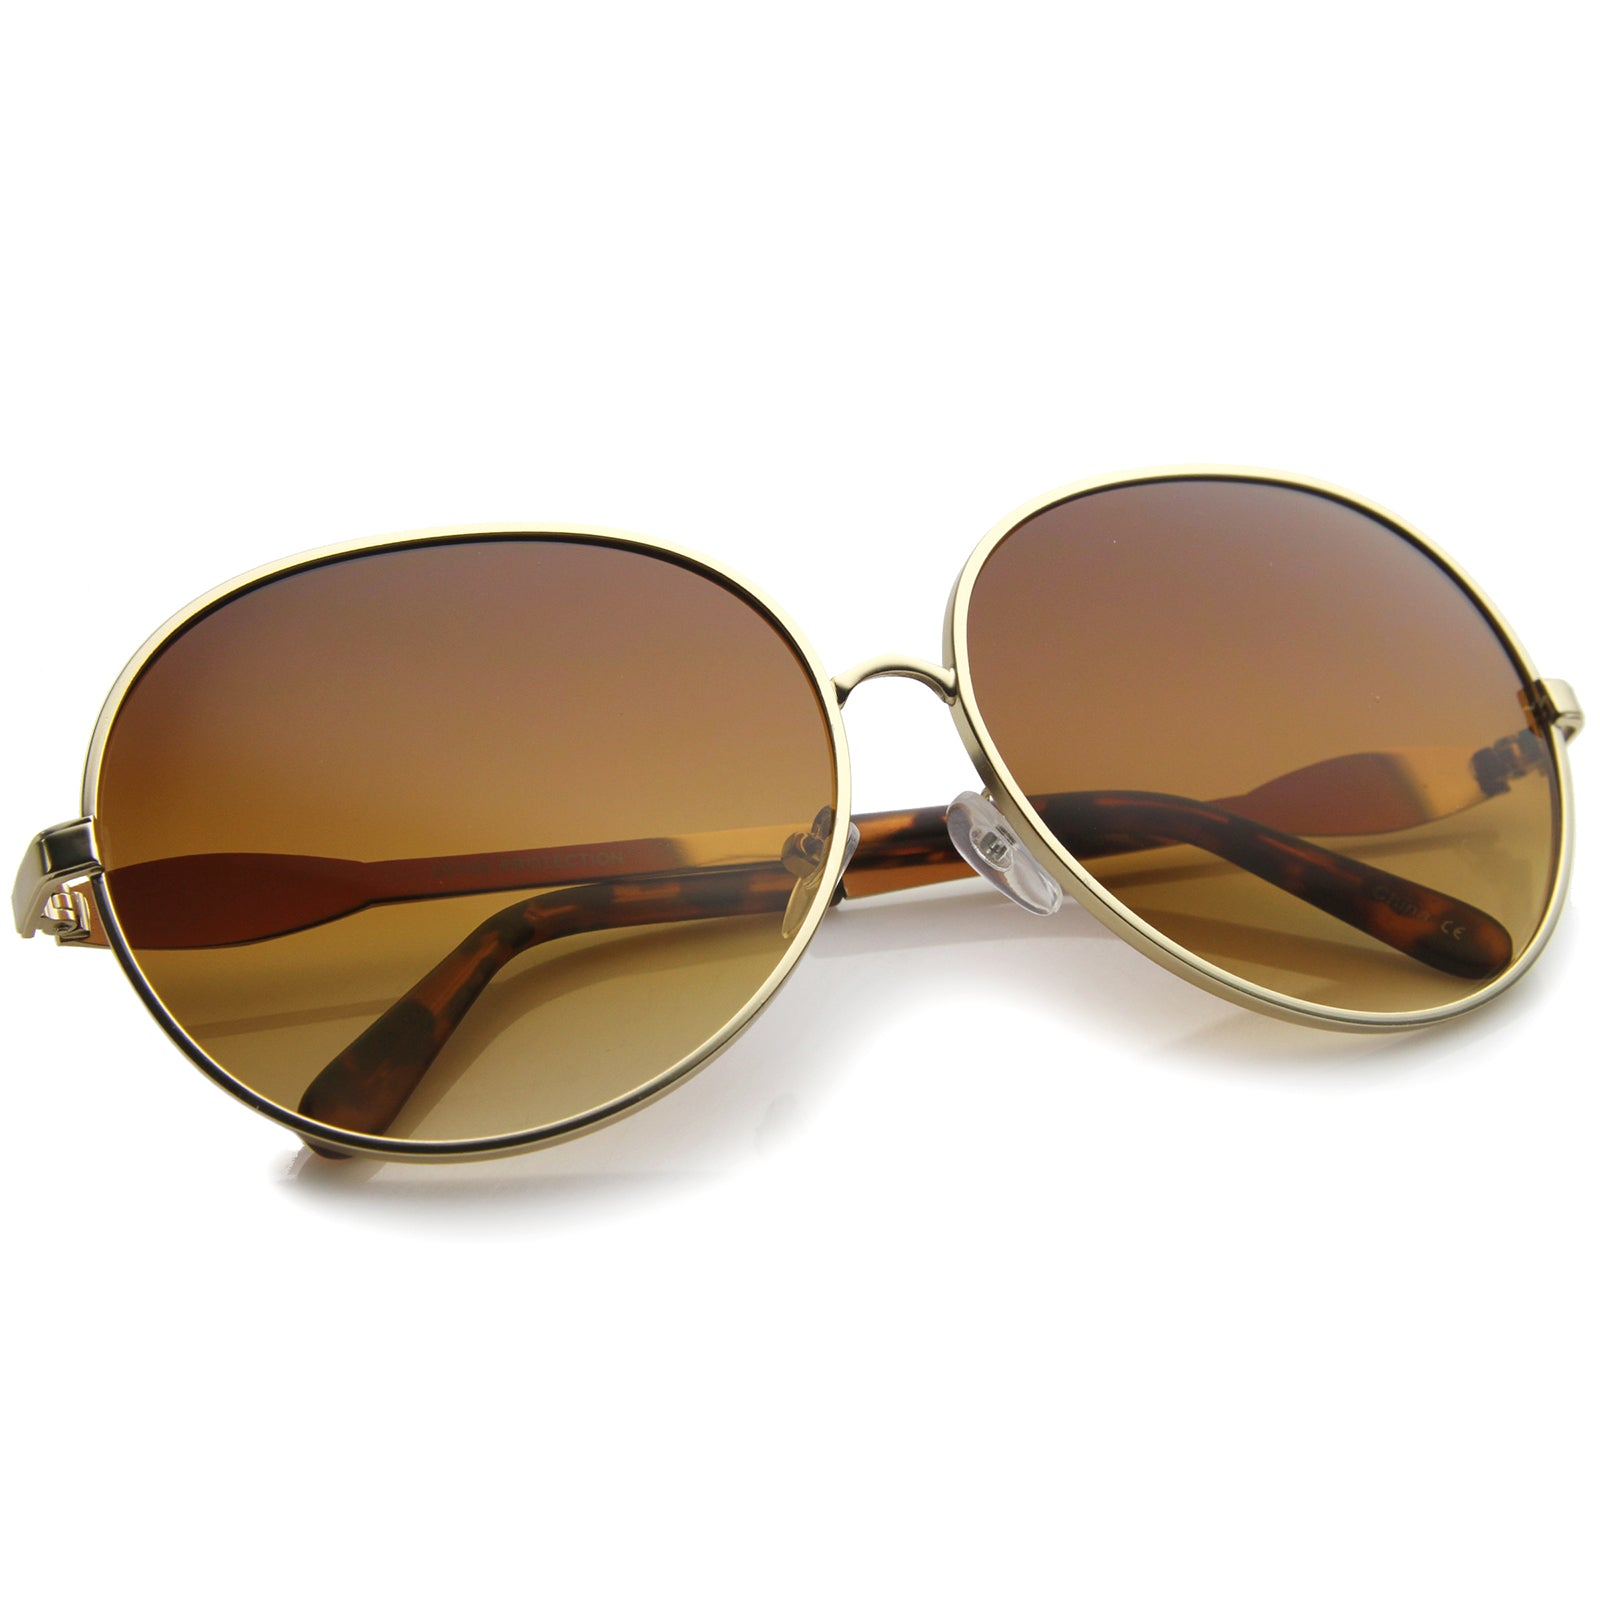 Womens Glam Full Metal Frame Oversized Round Sunglasses 63mm - sunglass.la - 12